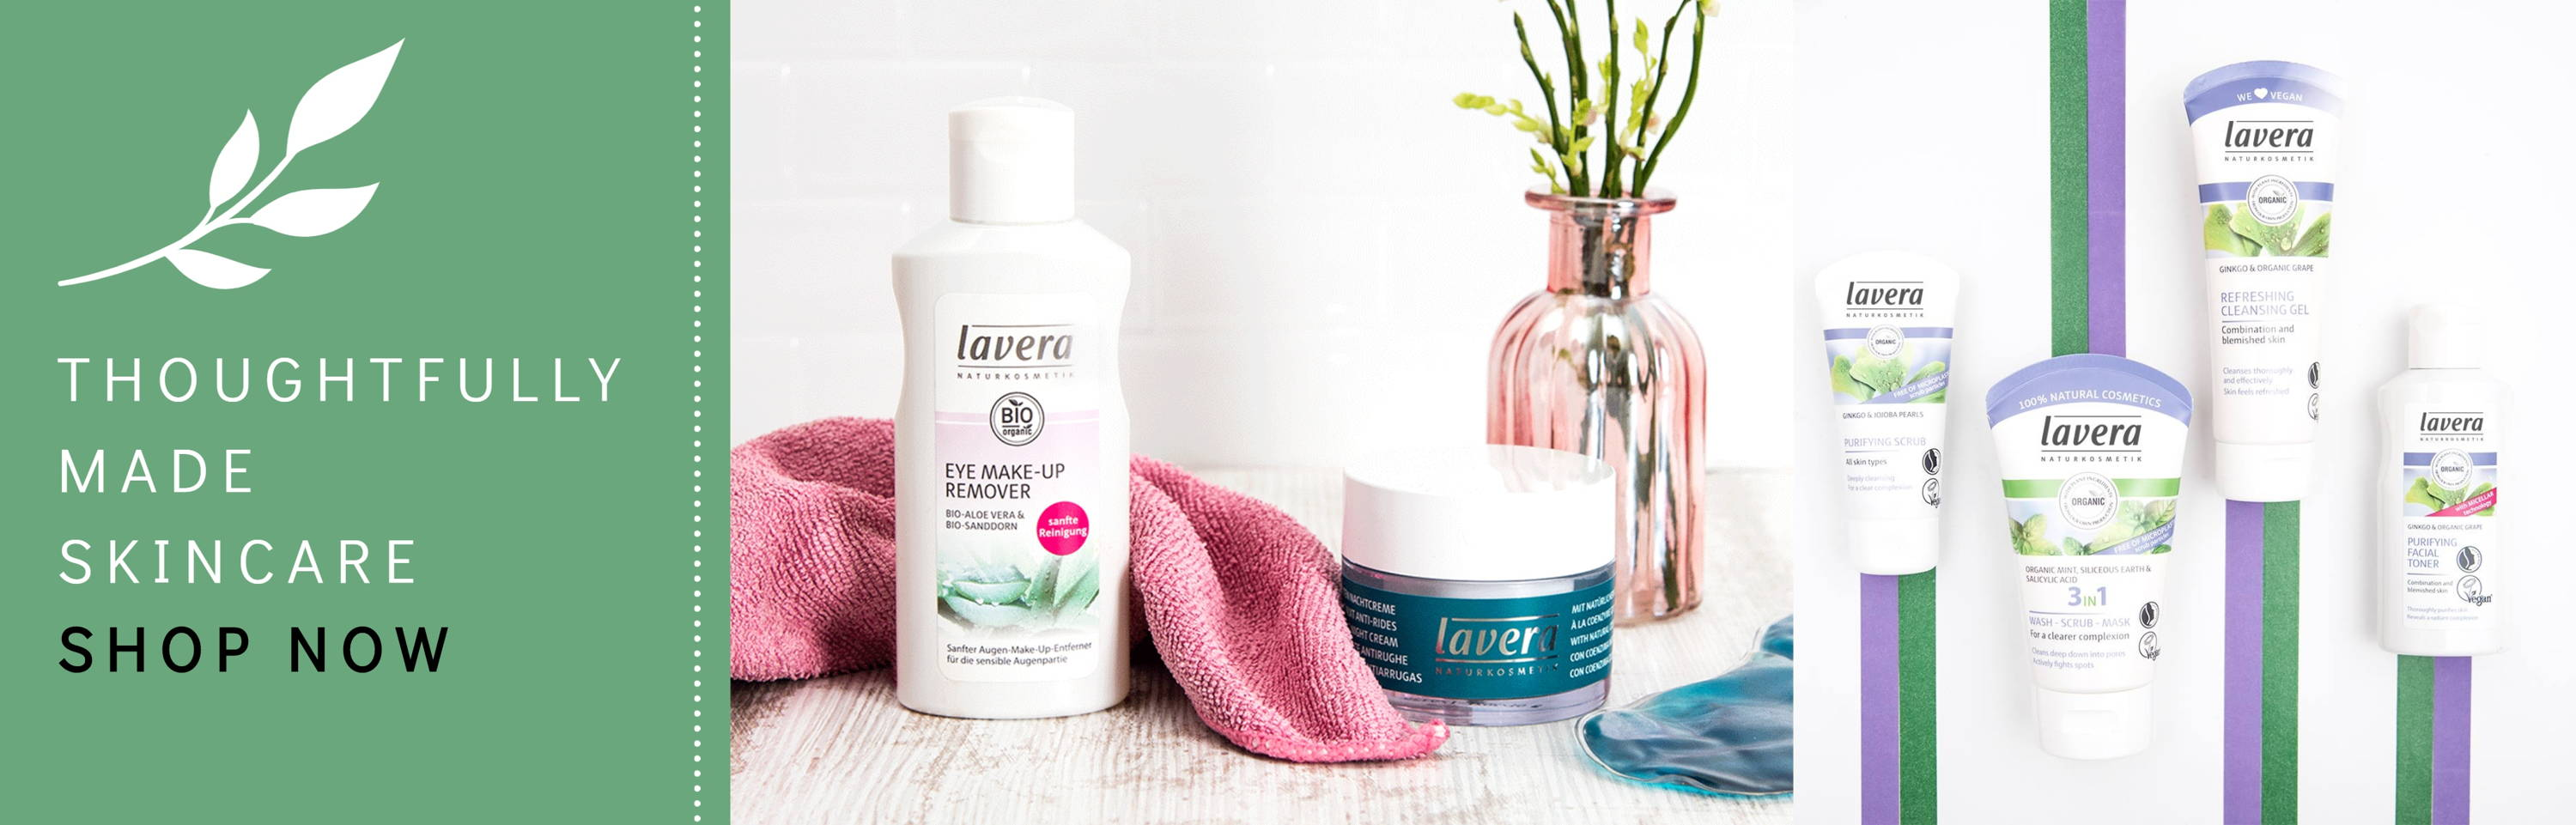 lavera natural and organic skincare from the best brand.